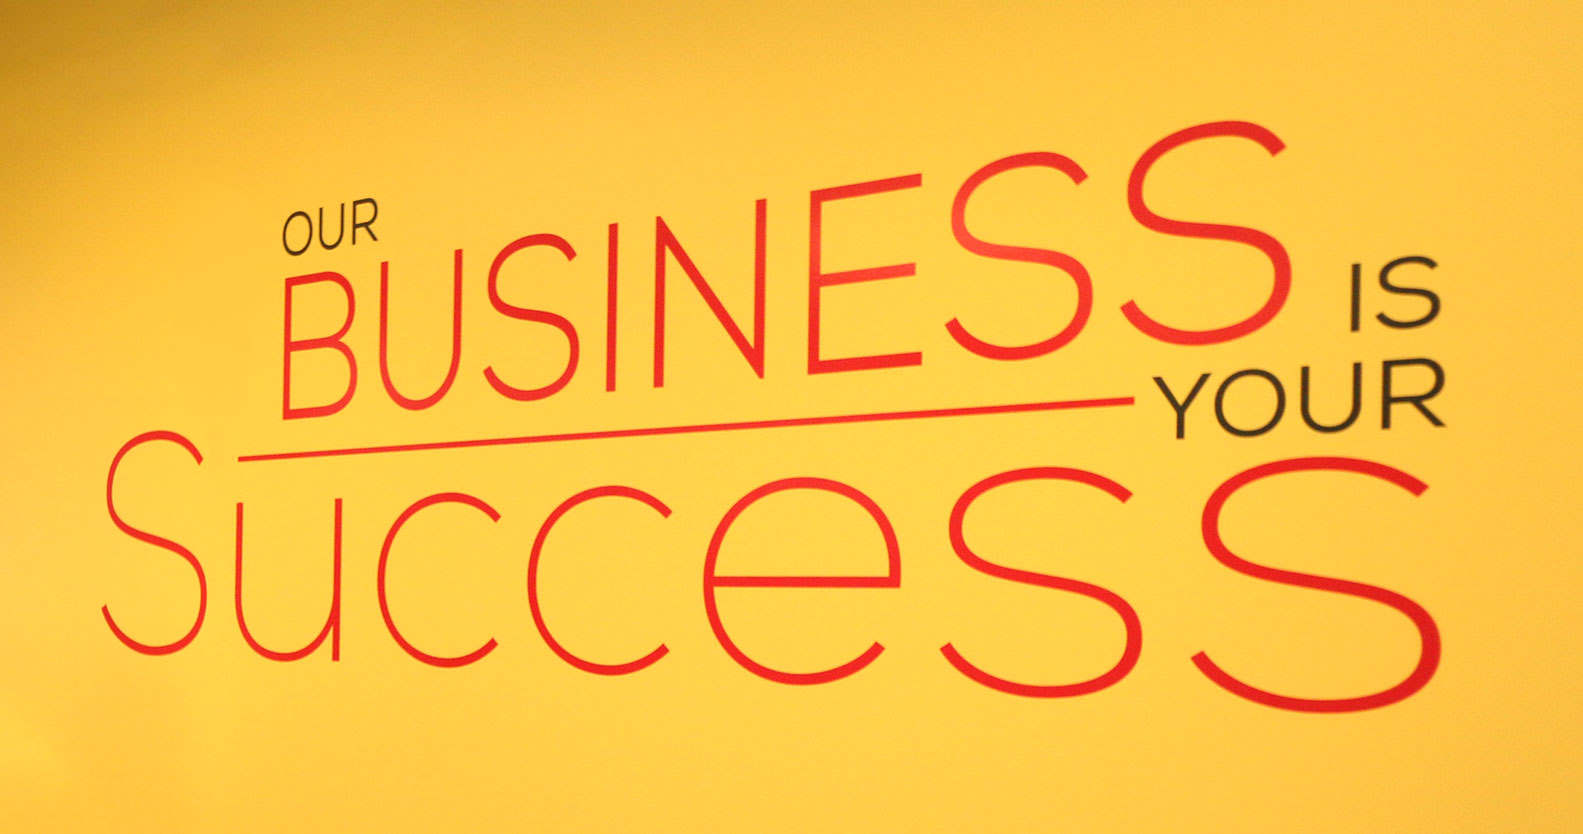 Our Business Is Your Success